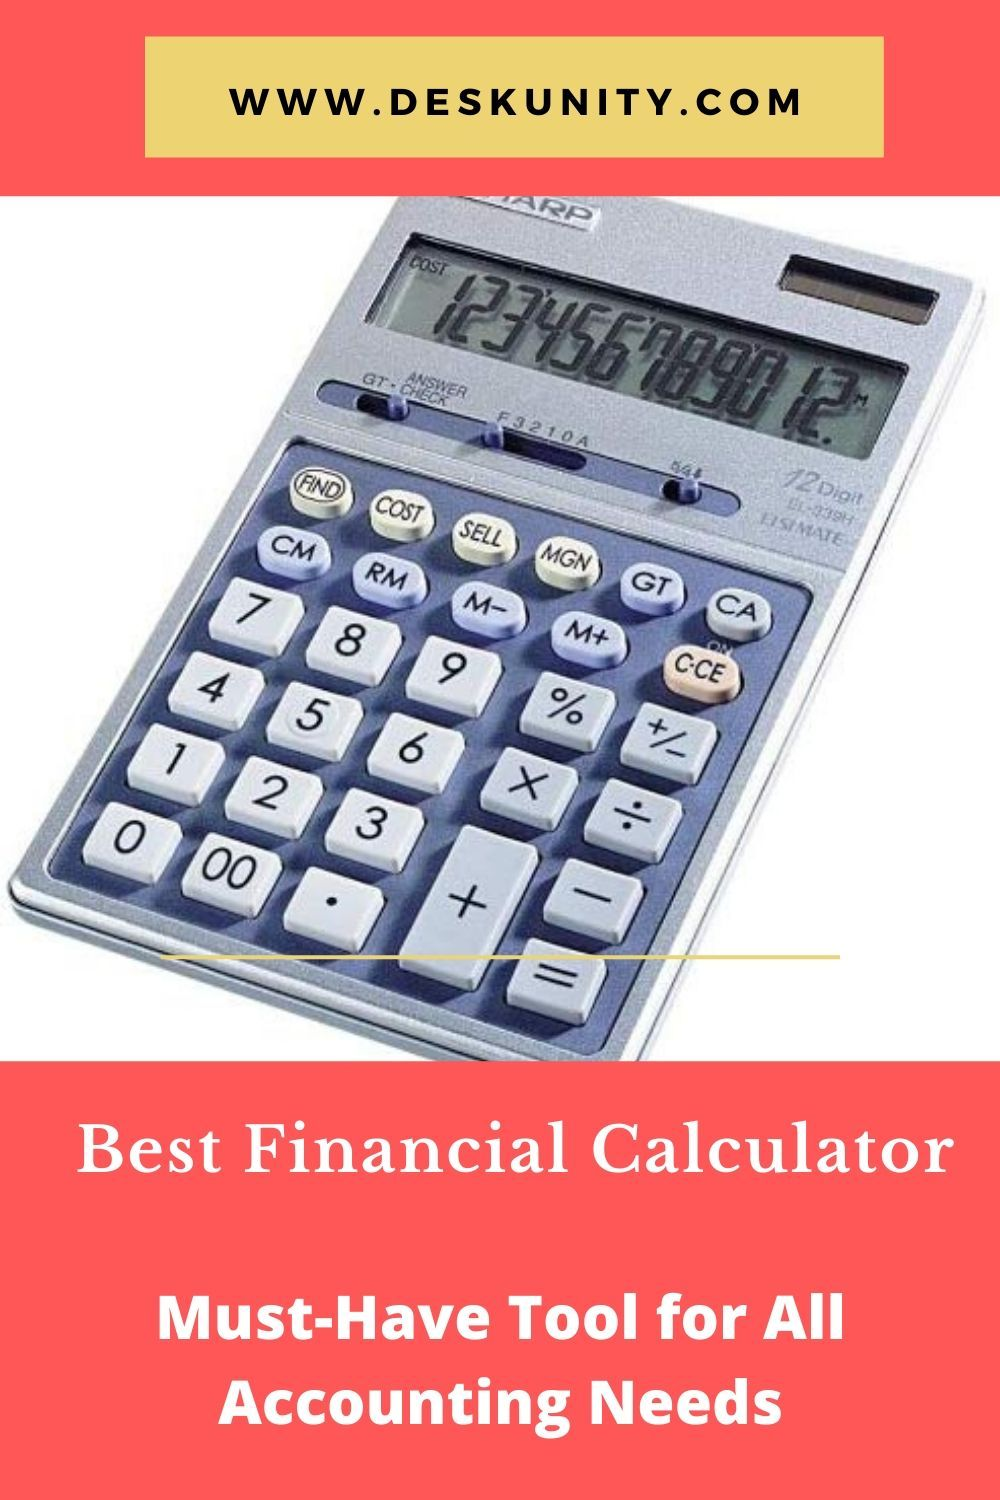 Top 10 Best Financial Calculator Of 2020 Must Have Tool For All Accounting Needs In 2020 Financial Calculators Calculator Must Have Tools